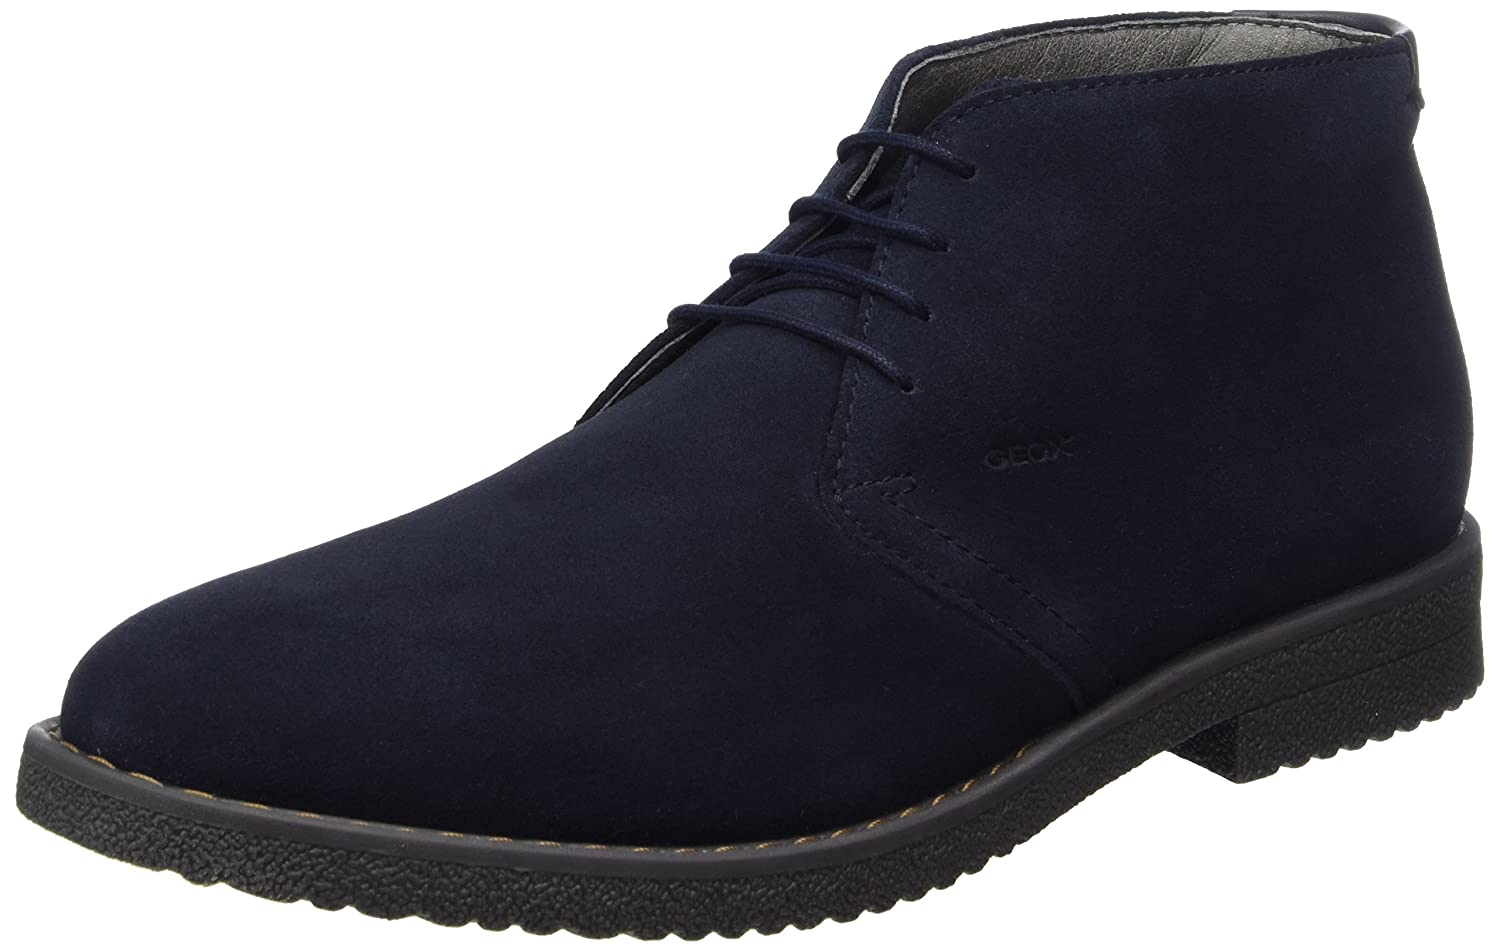 41a5752cfa8cf Geox Men's Brandled 3 Oxford new - appleshack.com.au